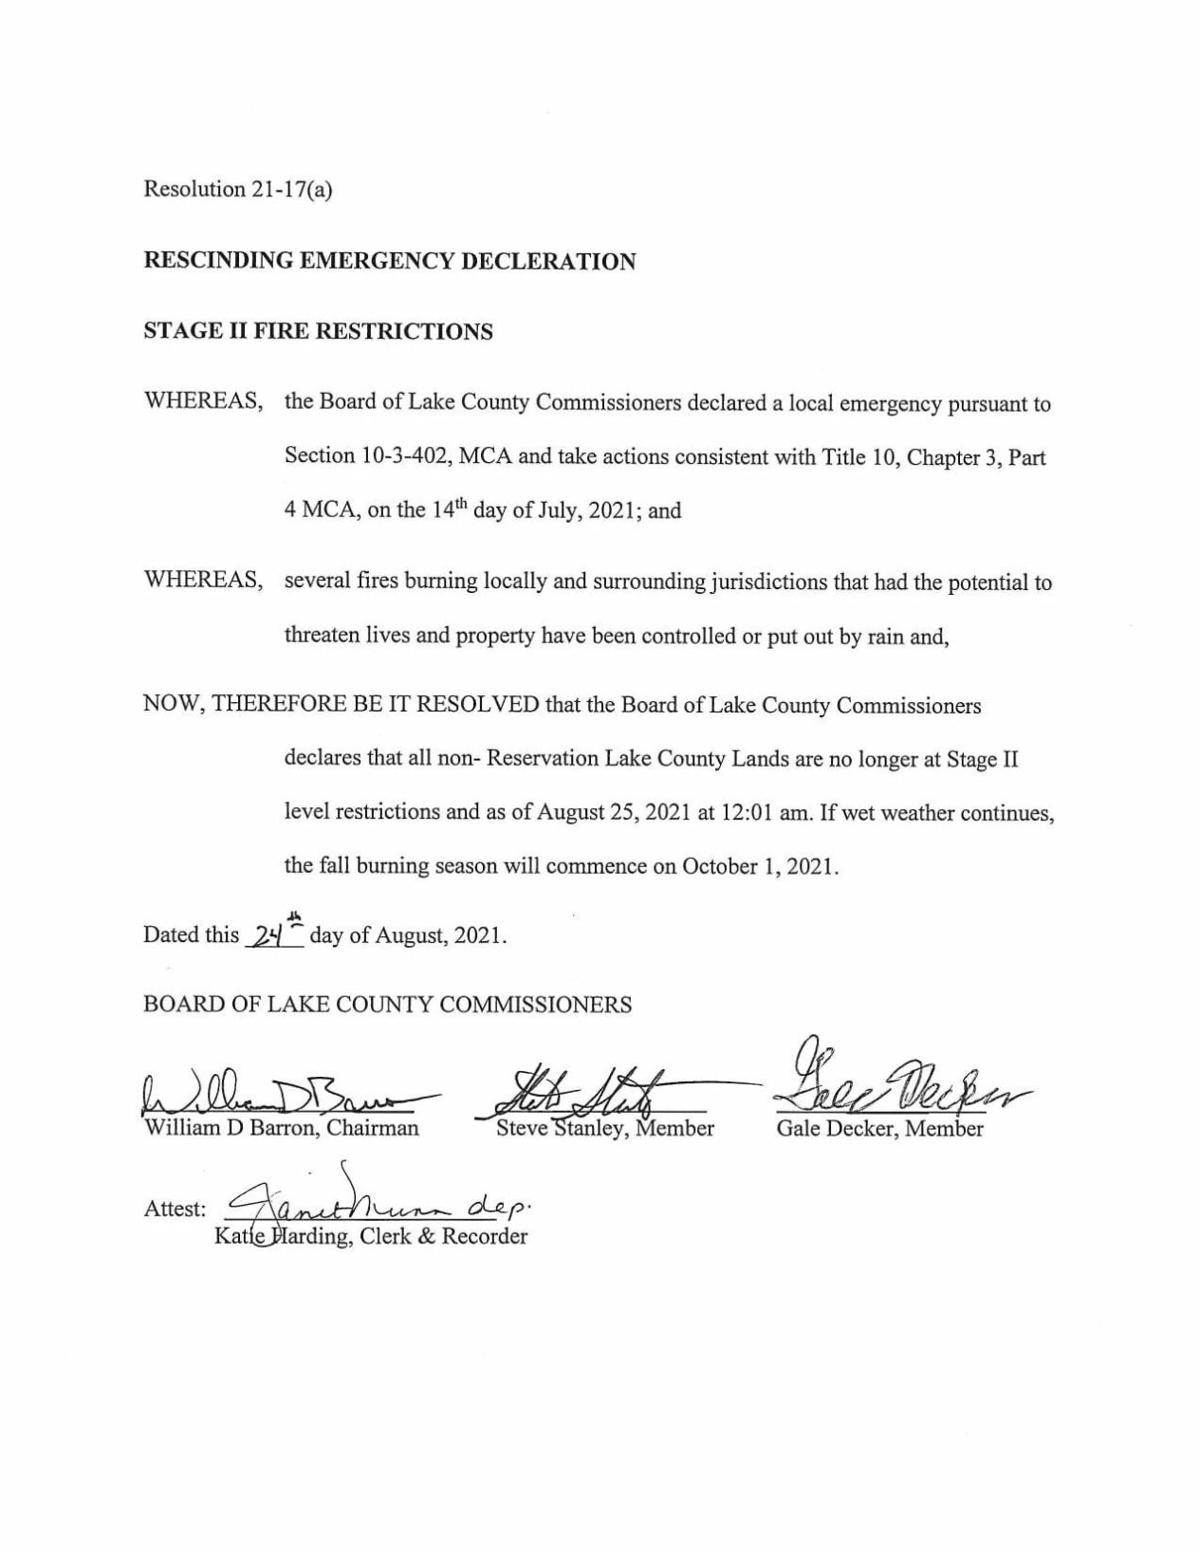 Lake Co. lifts Stage II fire restrictions